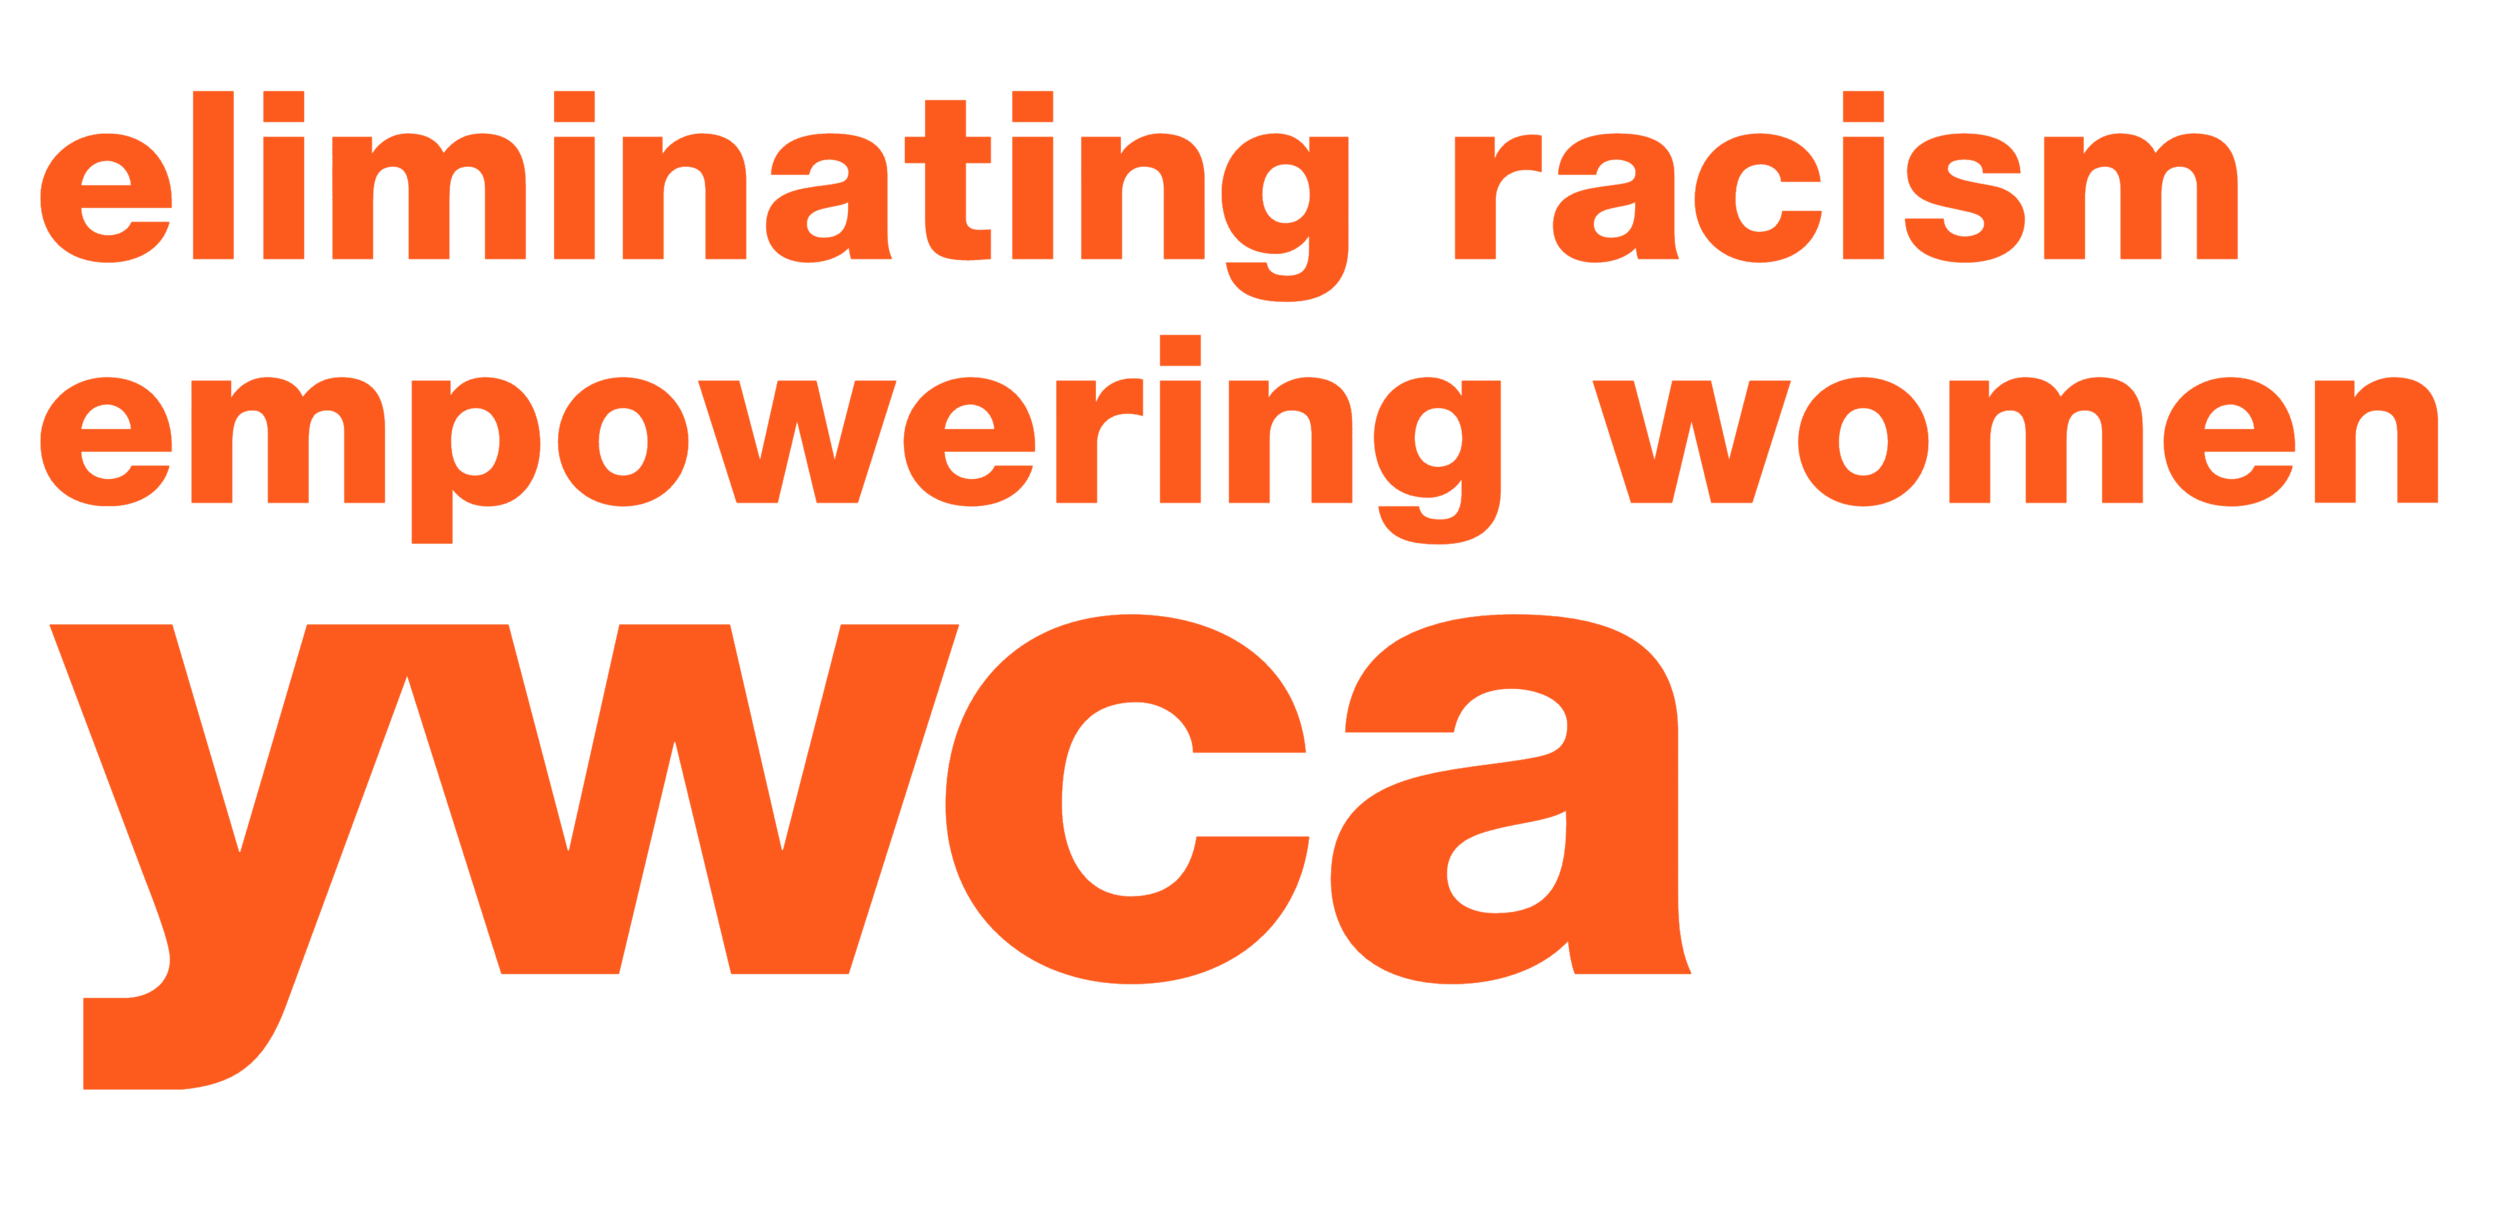 YWCA is a great advocacy and empowerment organization for women. Reach out to your local YWCA to see what they can do to help. Click the image above for a link to their webpage.